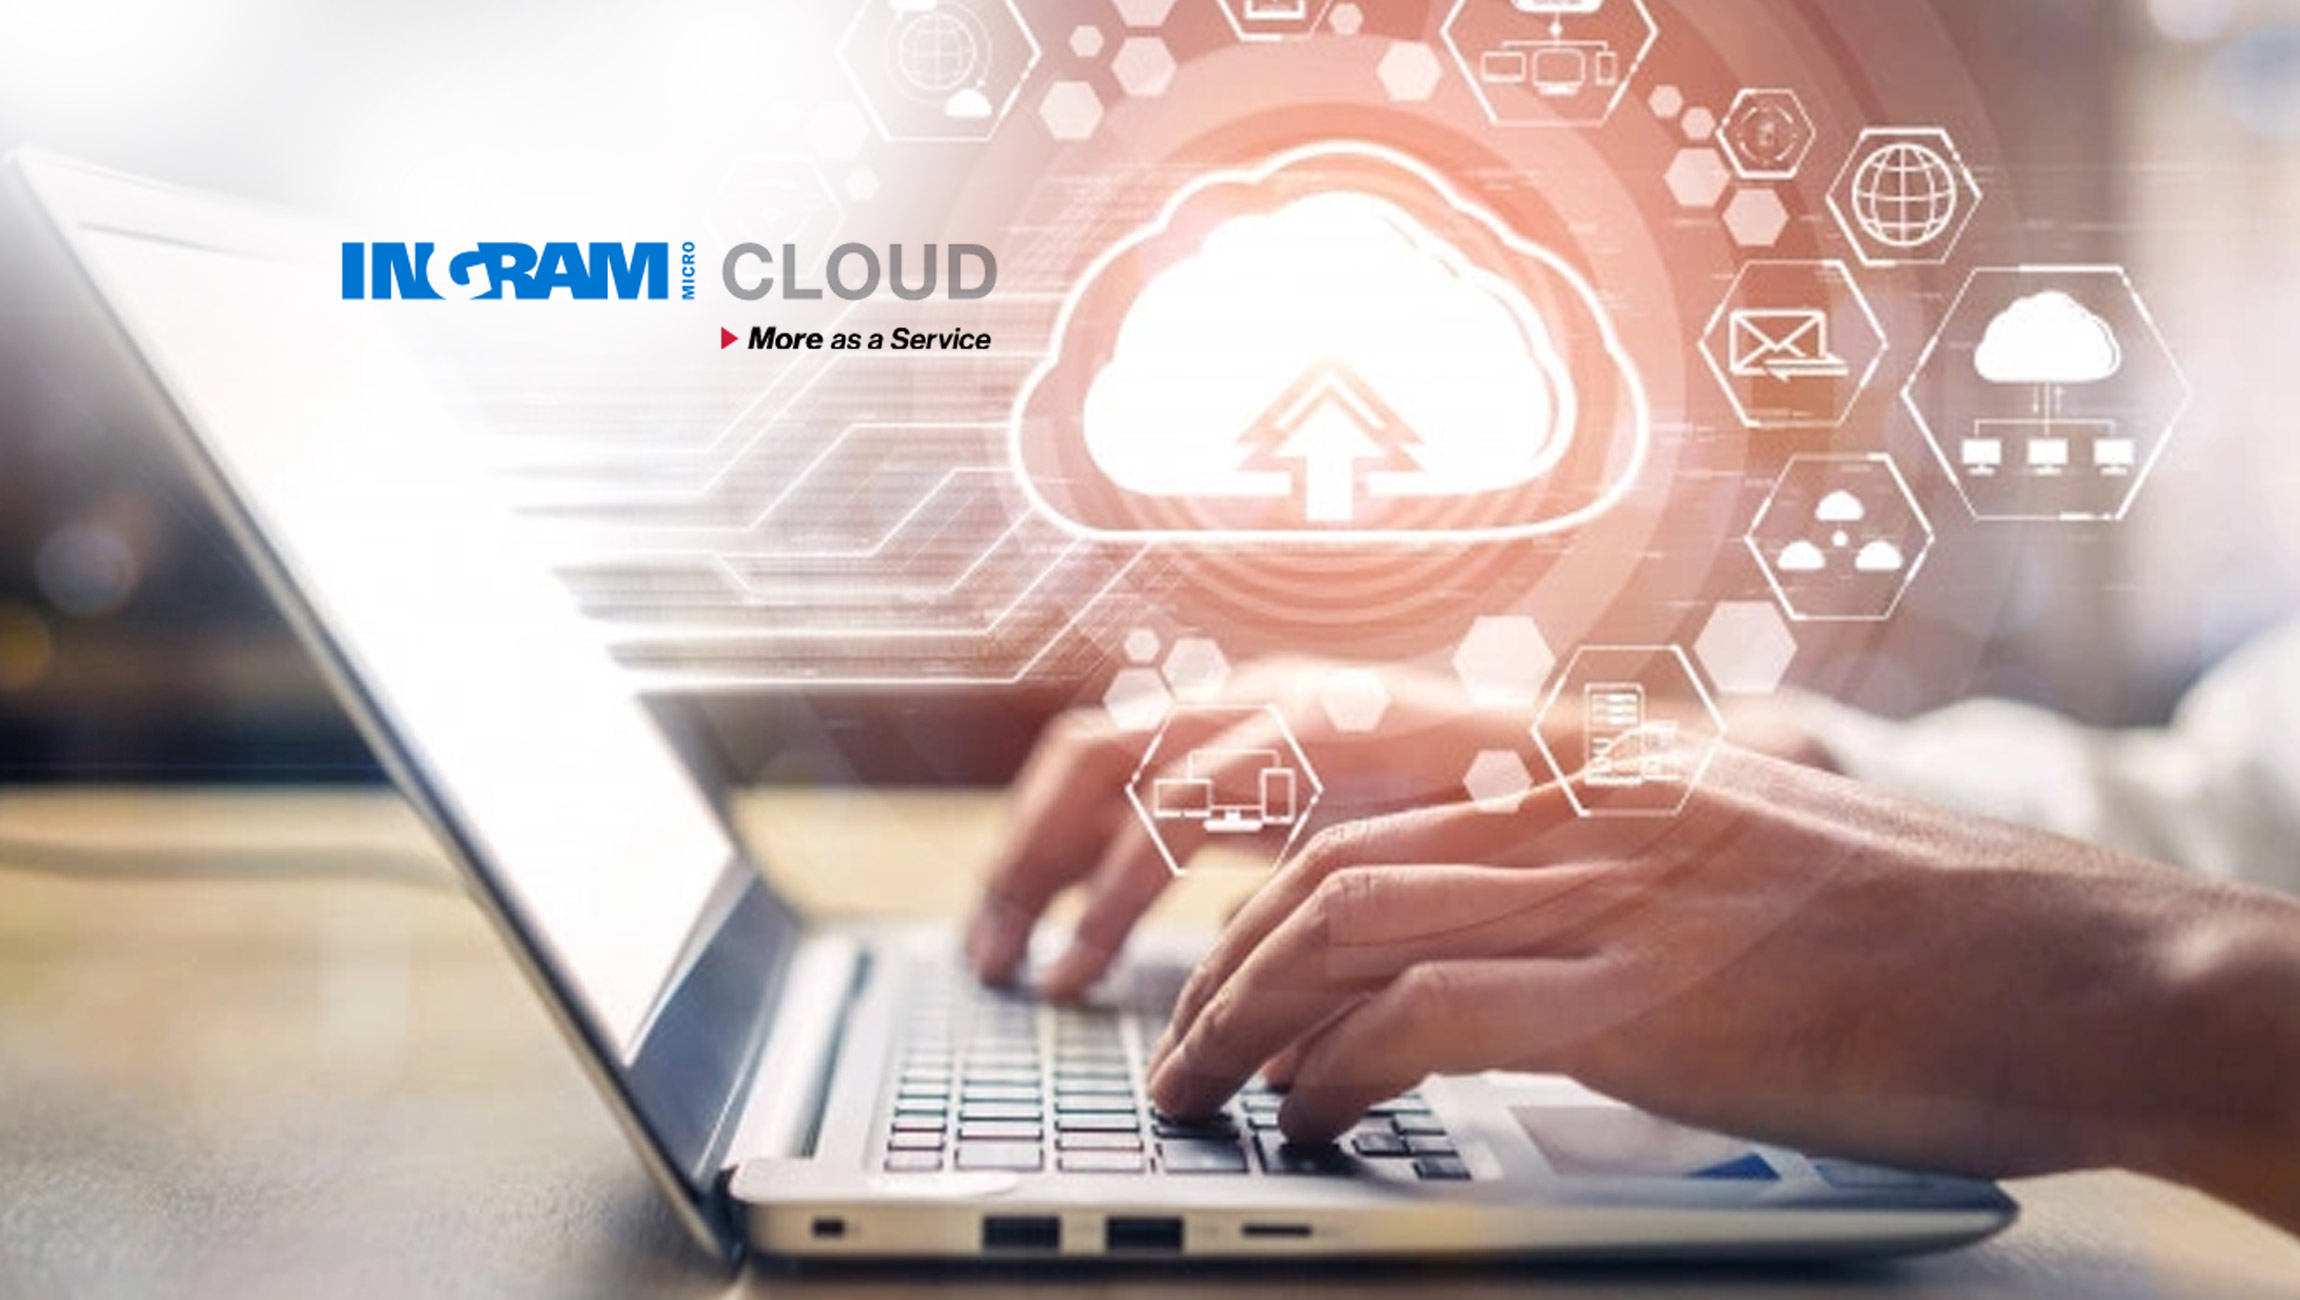 Ingram Micro Cloud Introduces White-Label Marketplace, A Powerful New Feature To Help Resellers Automate Their Cloud Business